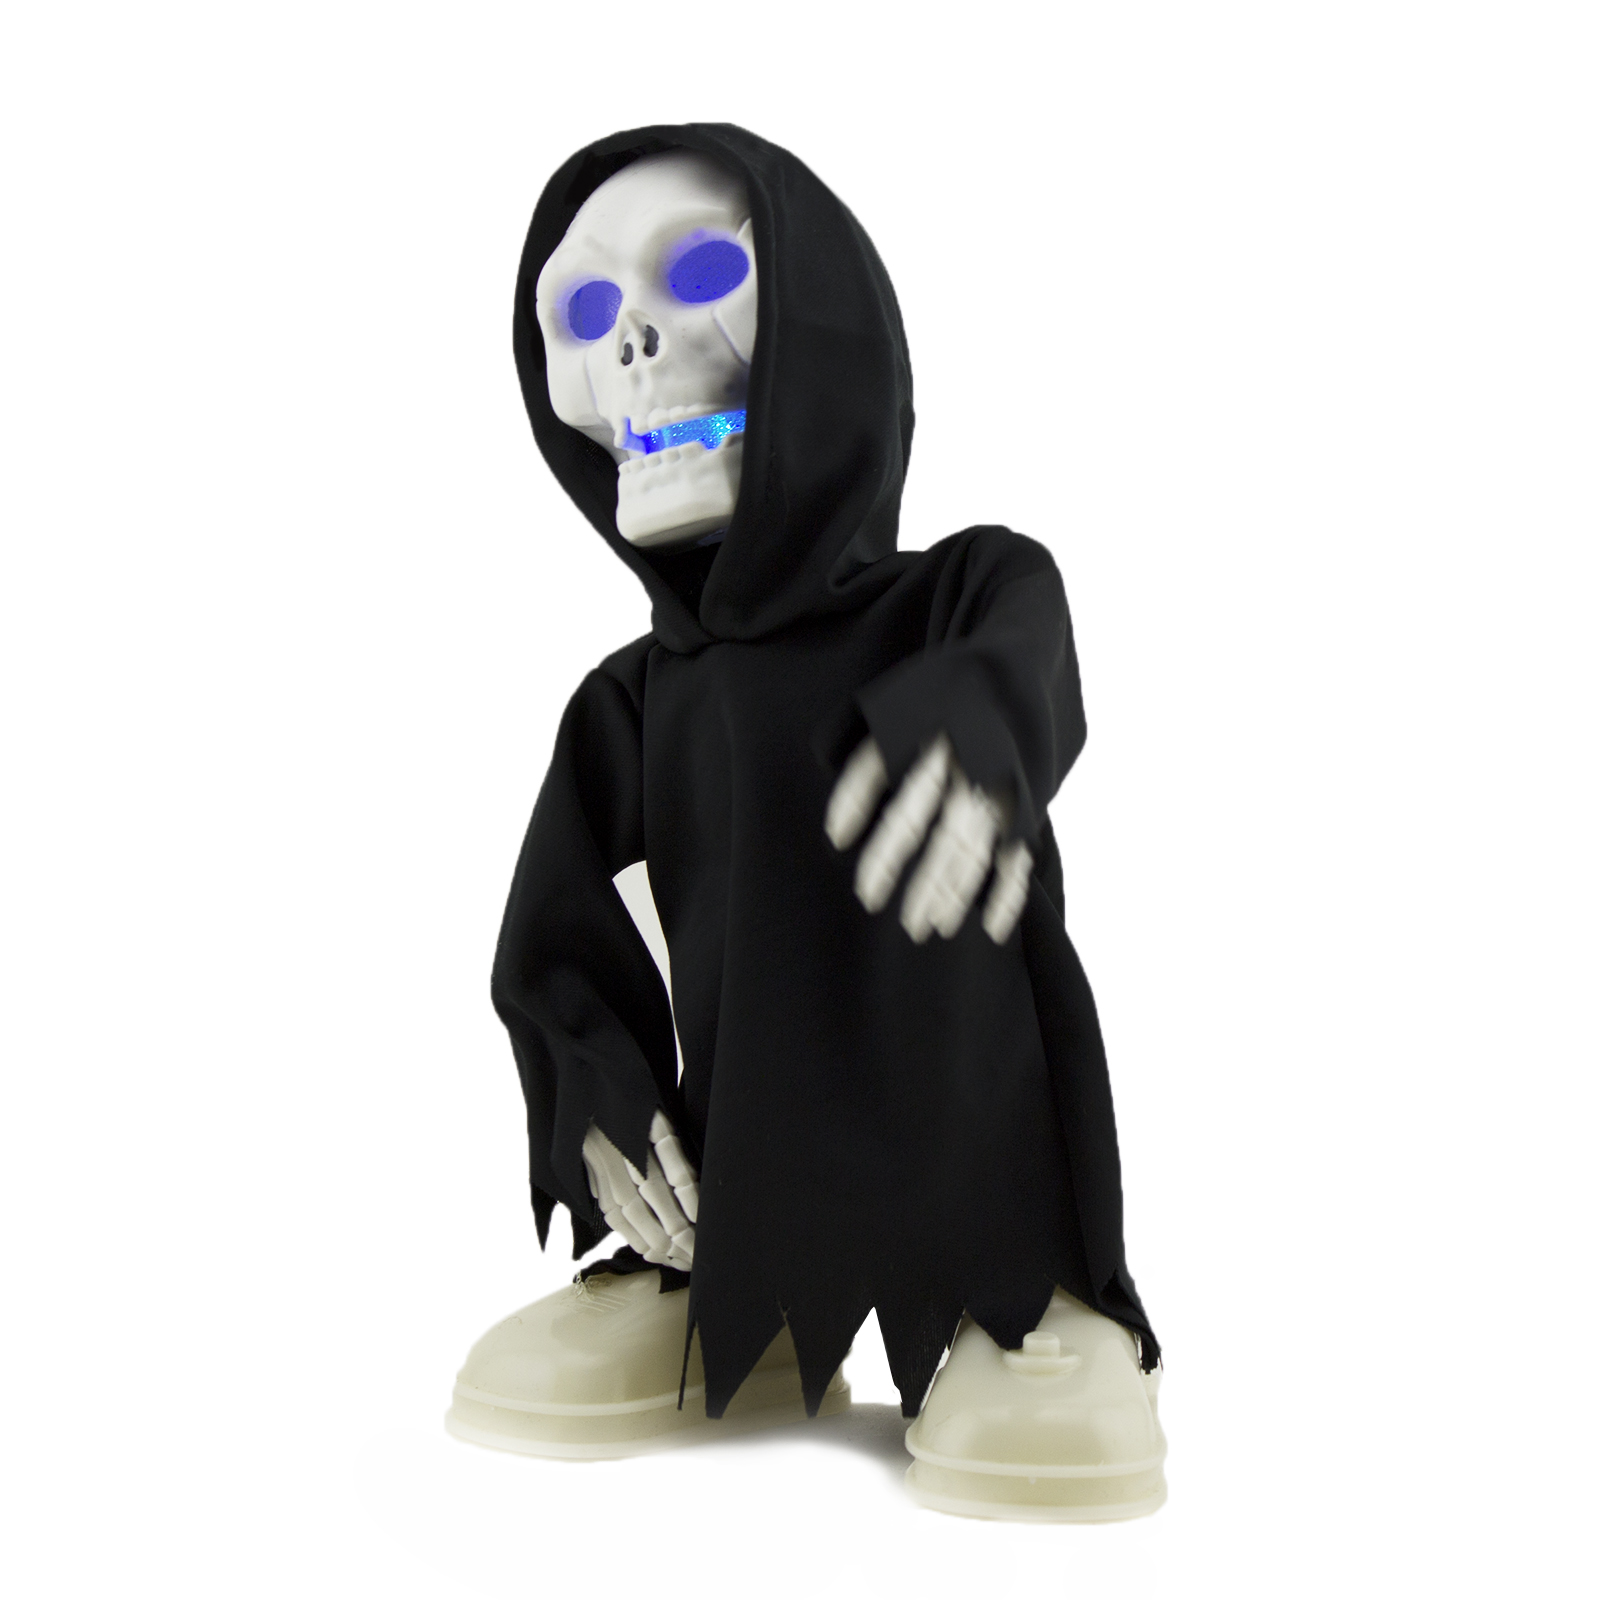 walking talking light up grim reaper animated skeleton halloween decoration eyes - Animated Halloween Decorations